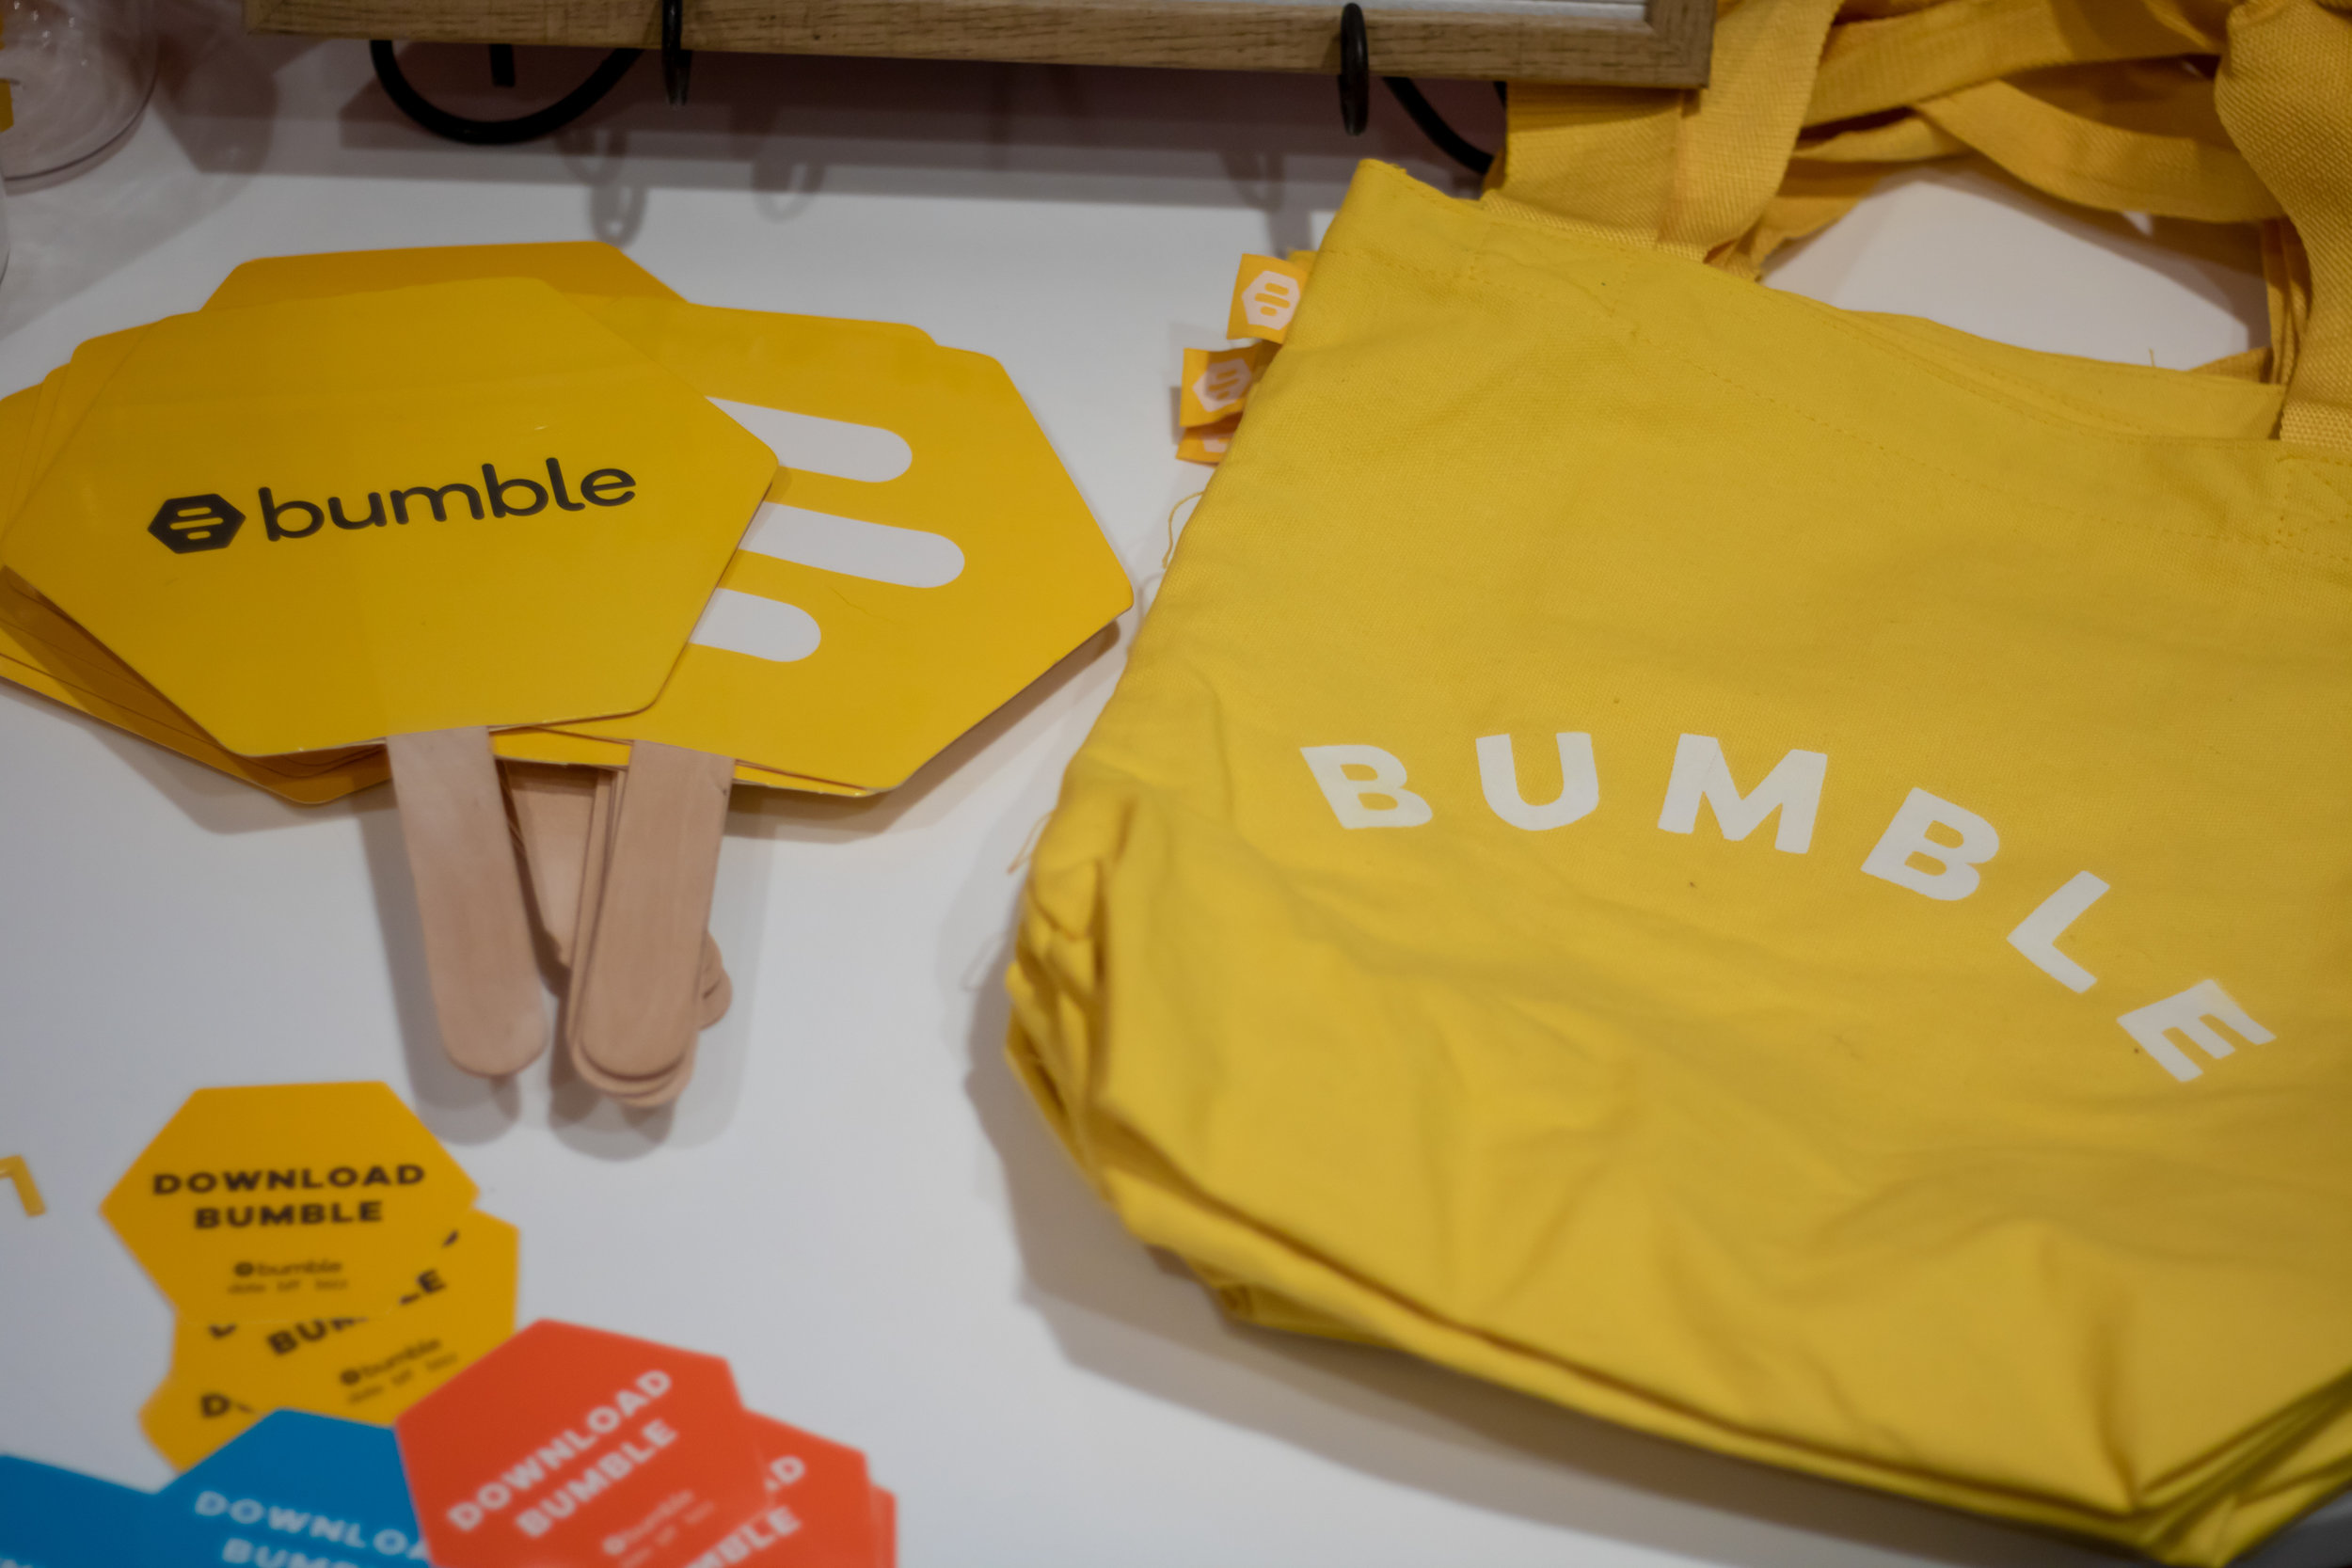 01262019 Bumble COTN-7.jpg